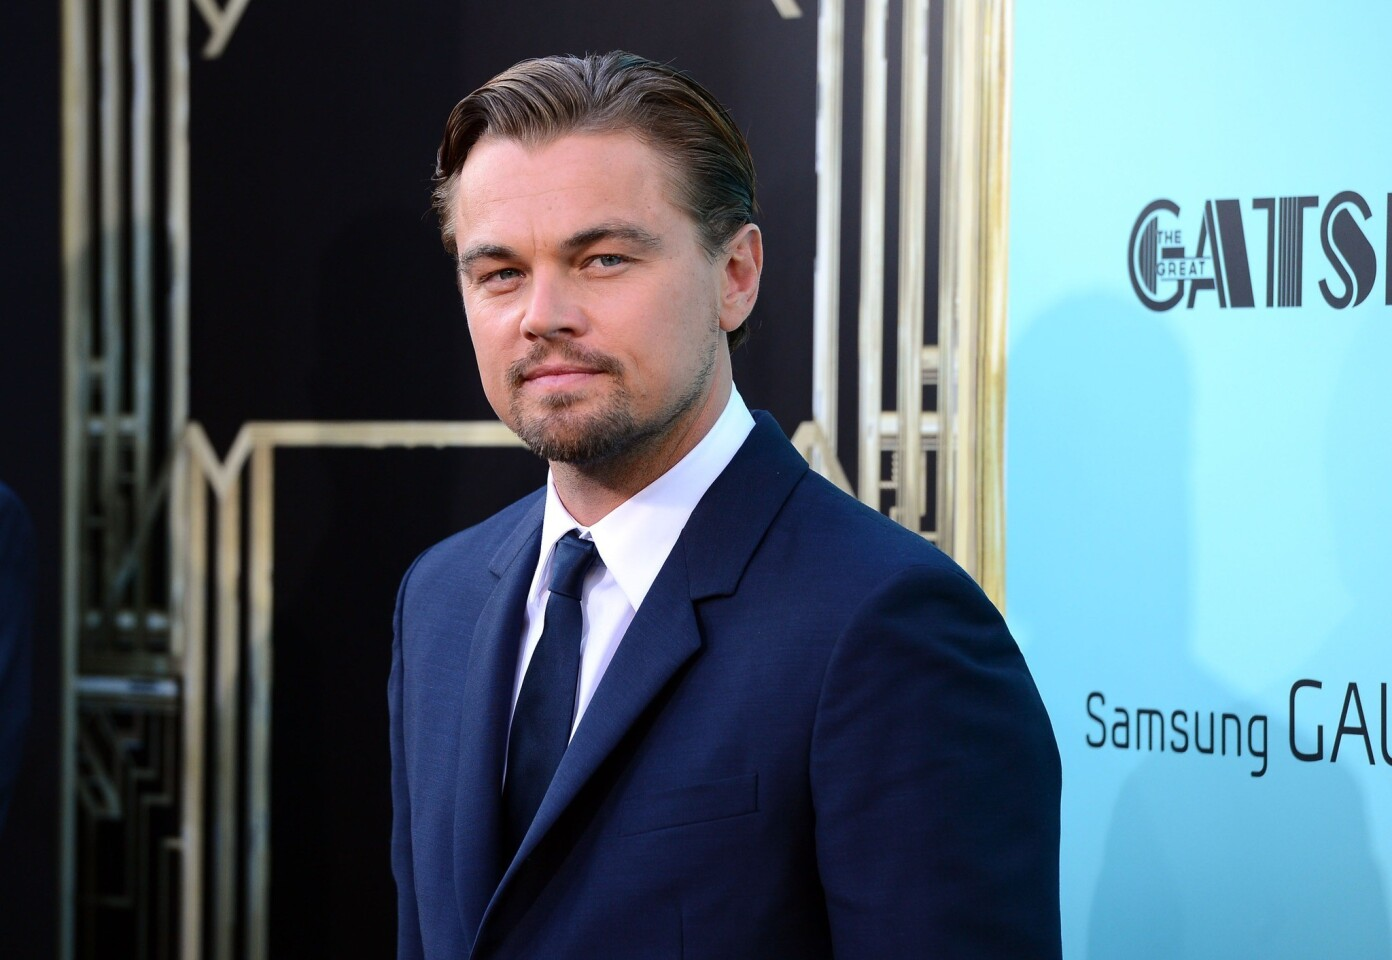 'The Great Gatsby' premiere